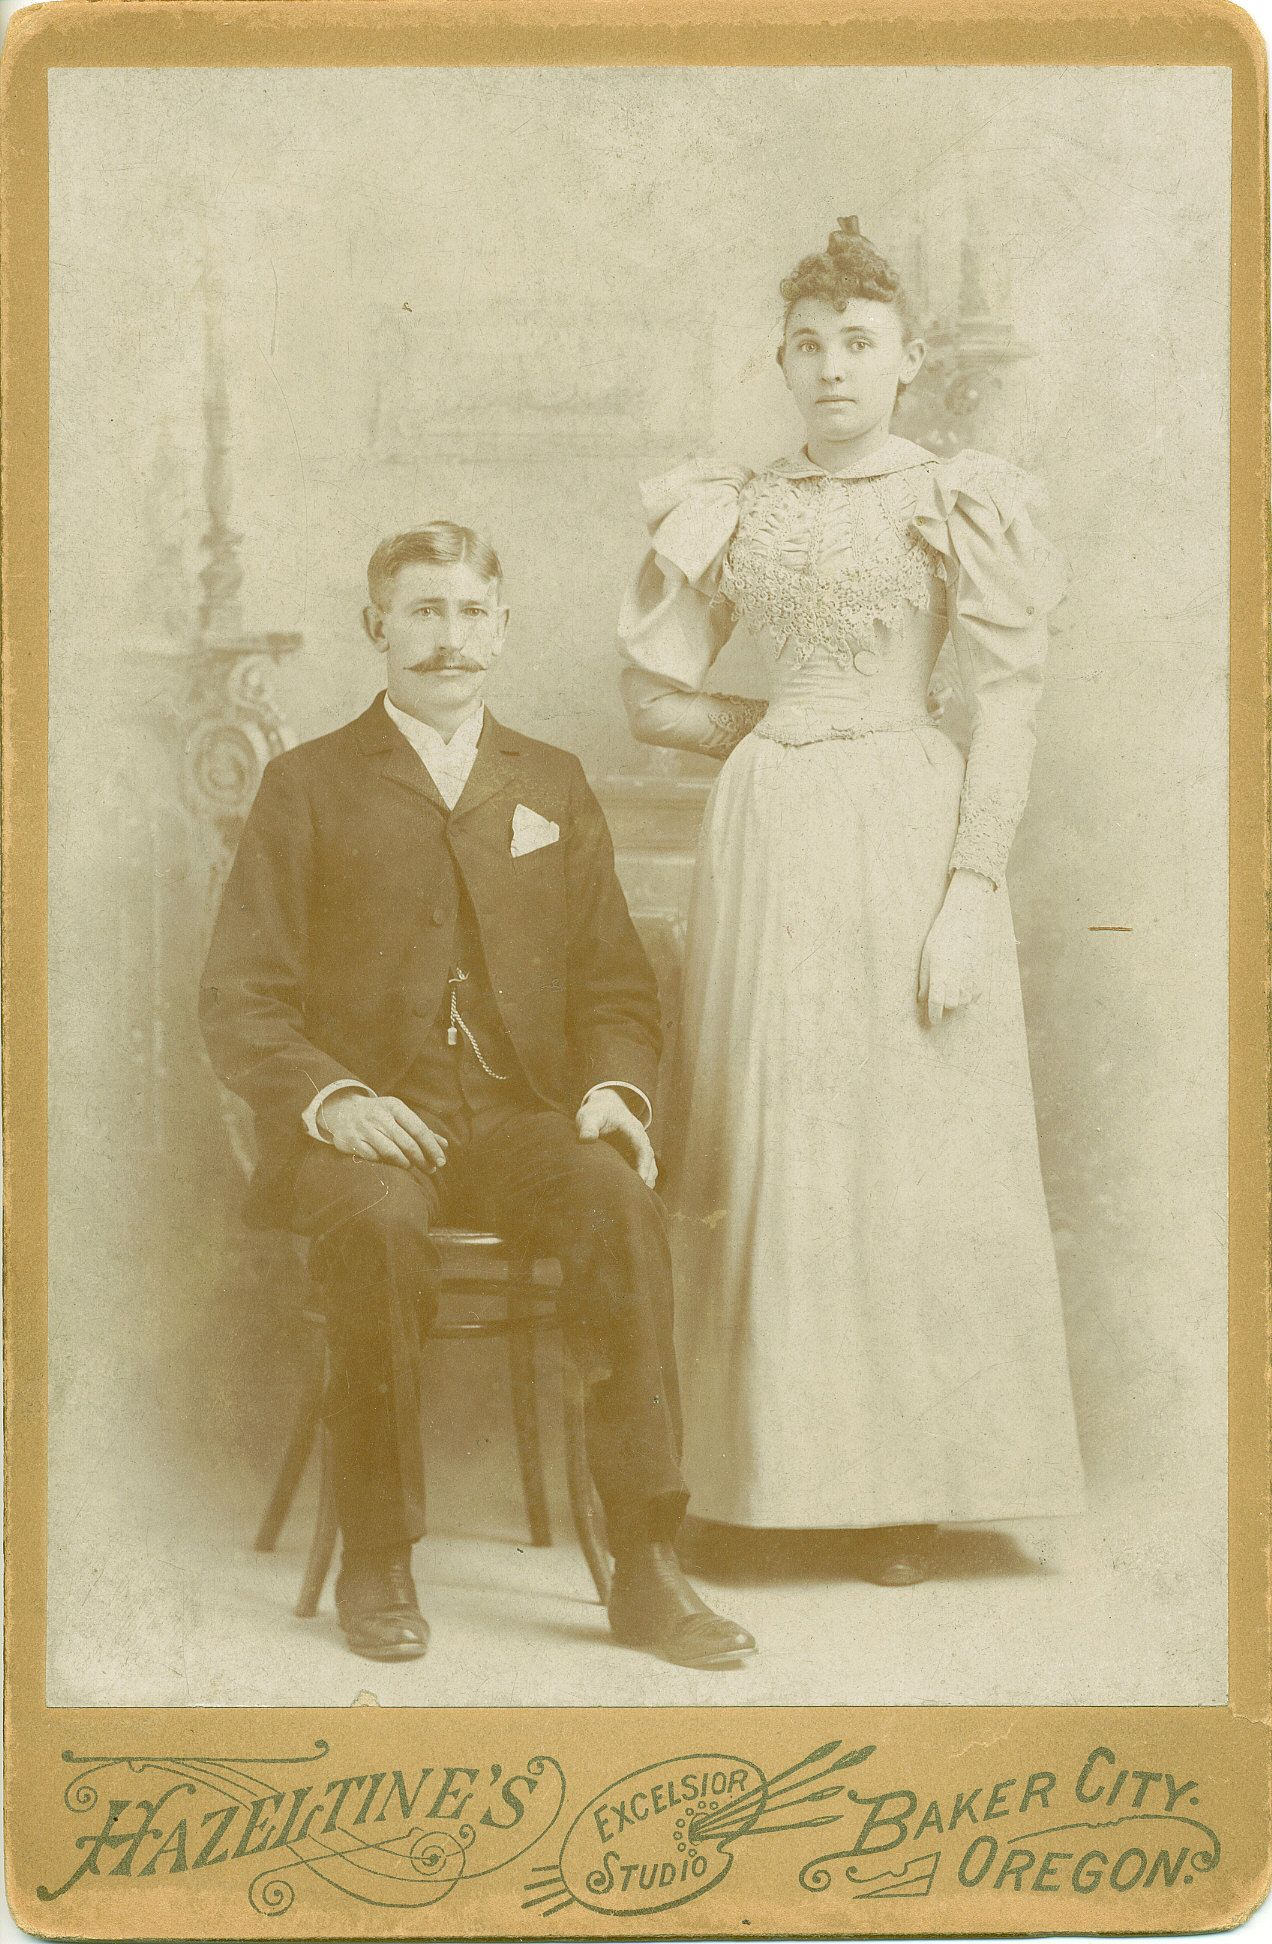 John H. Nagel married Louise in San Francisco